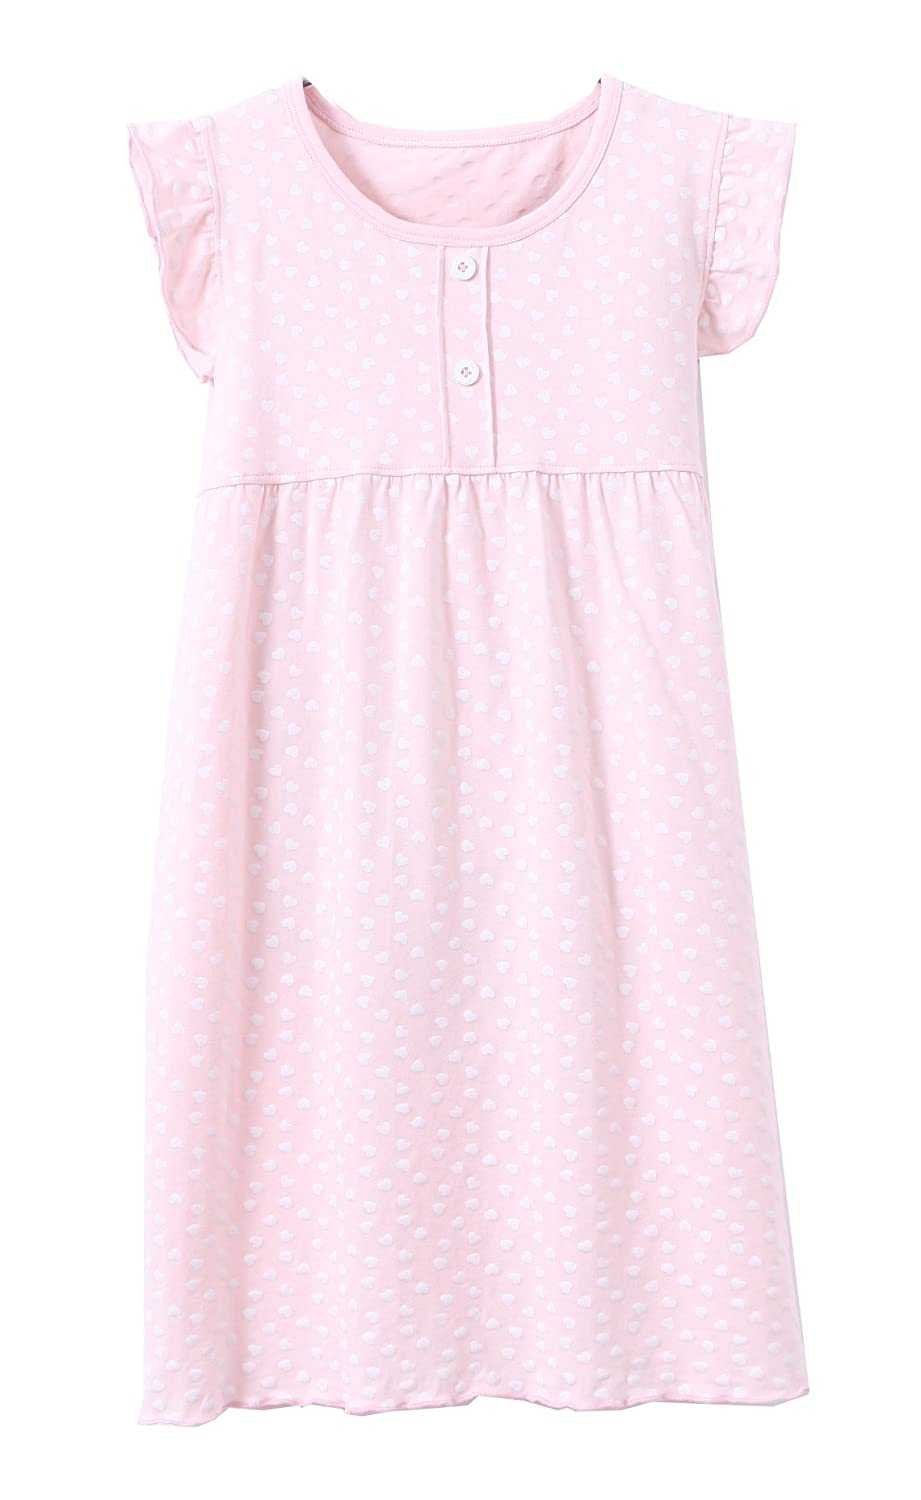 ABClothing Cotton Girls' Ruffle Sleeve Sleep Gown 2-12 Years Old Pink & White